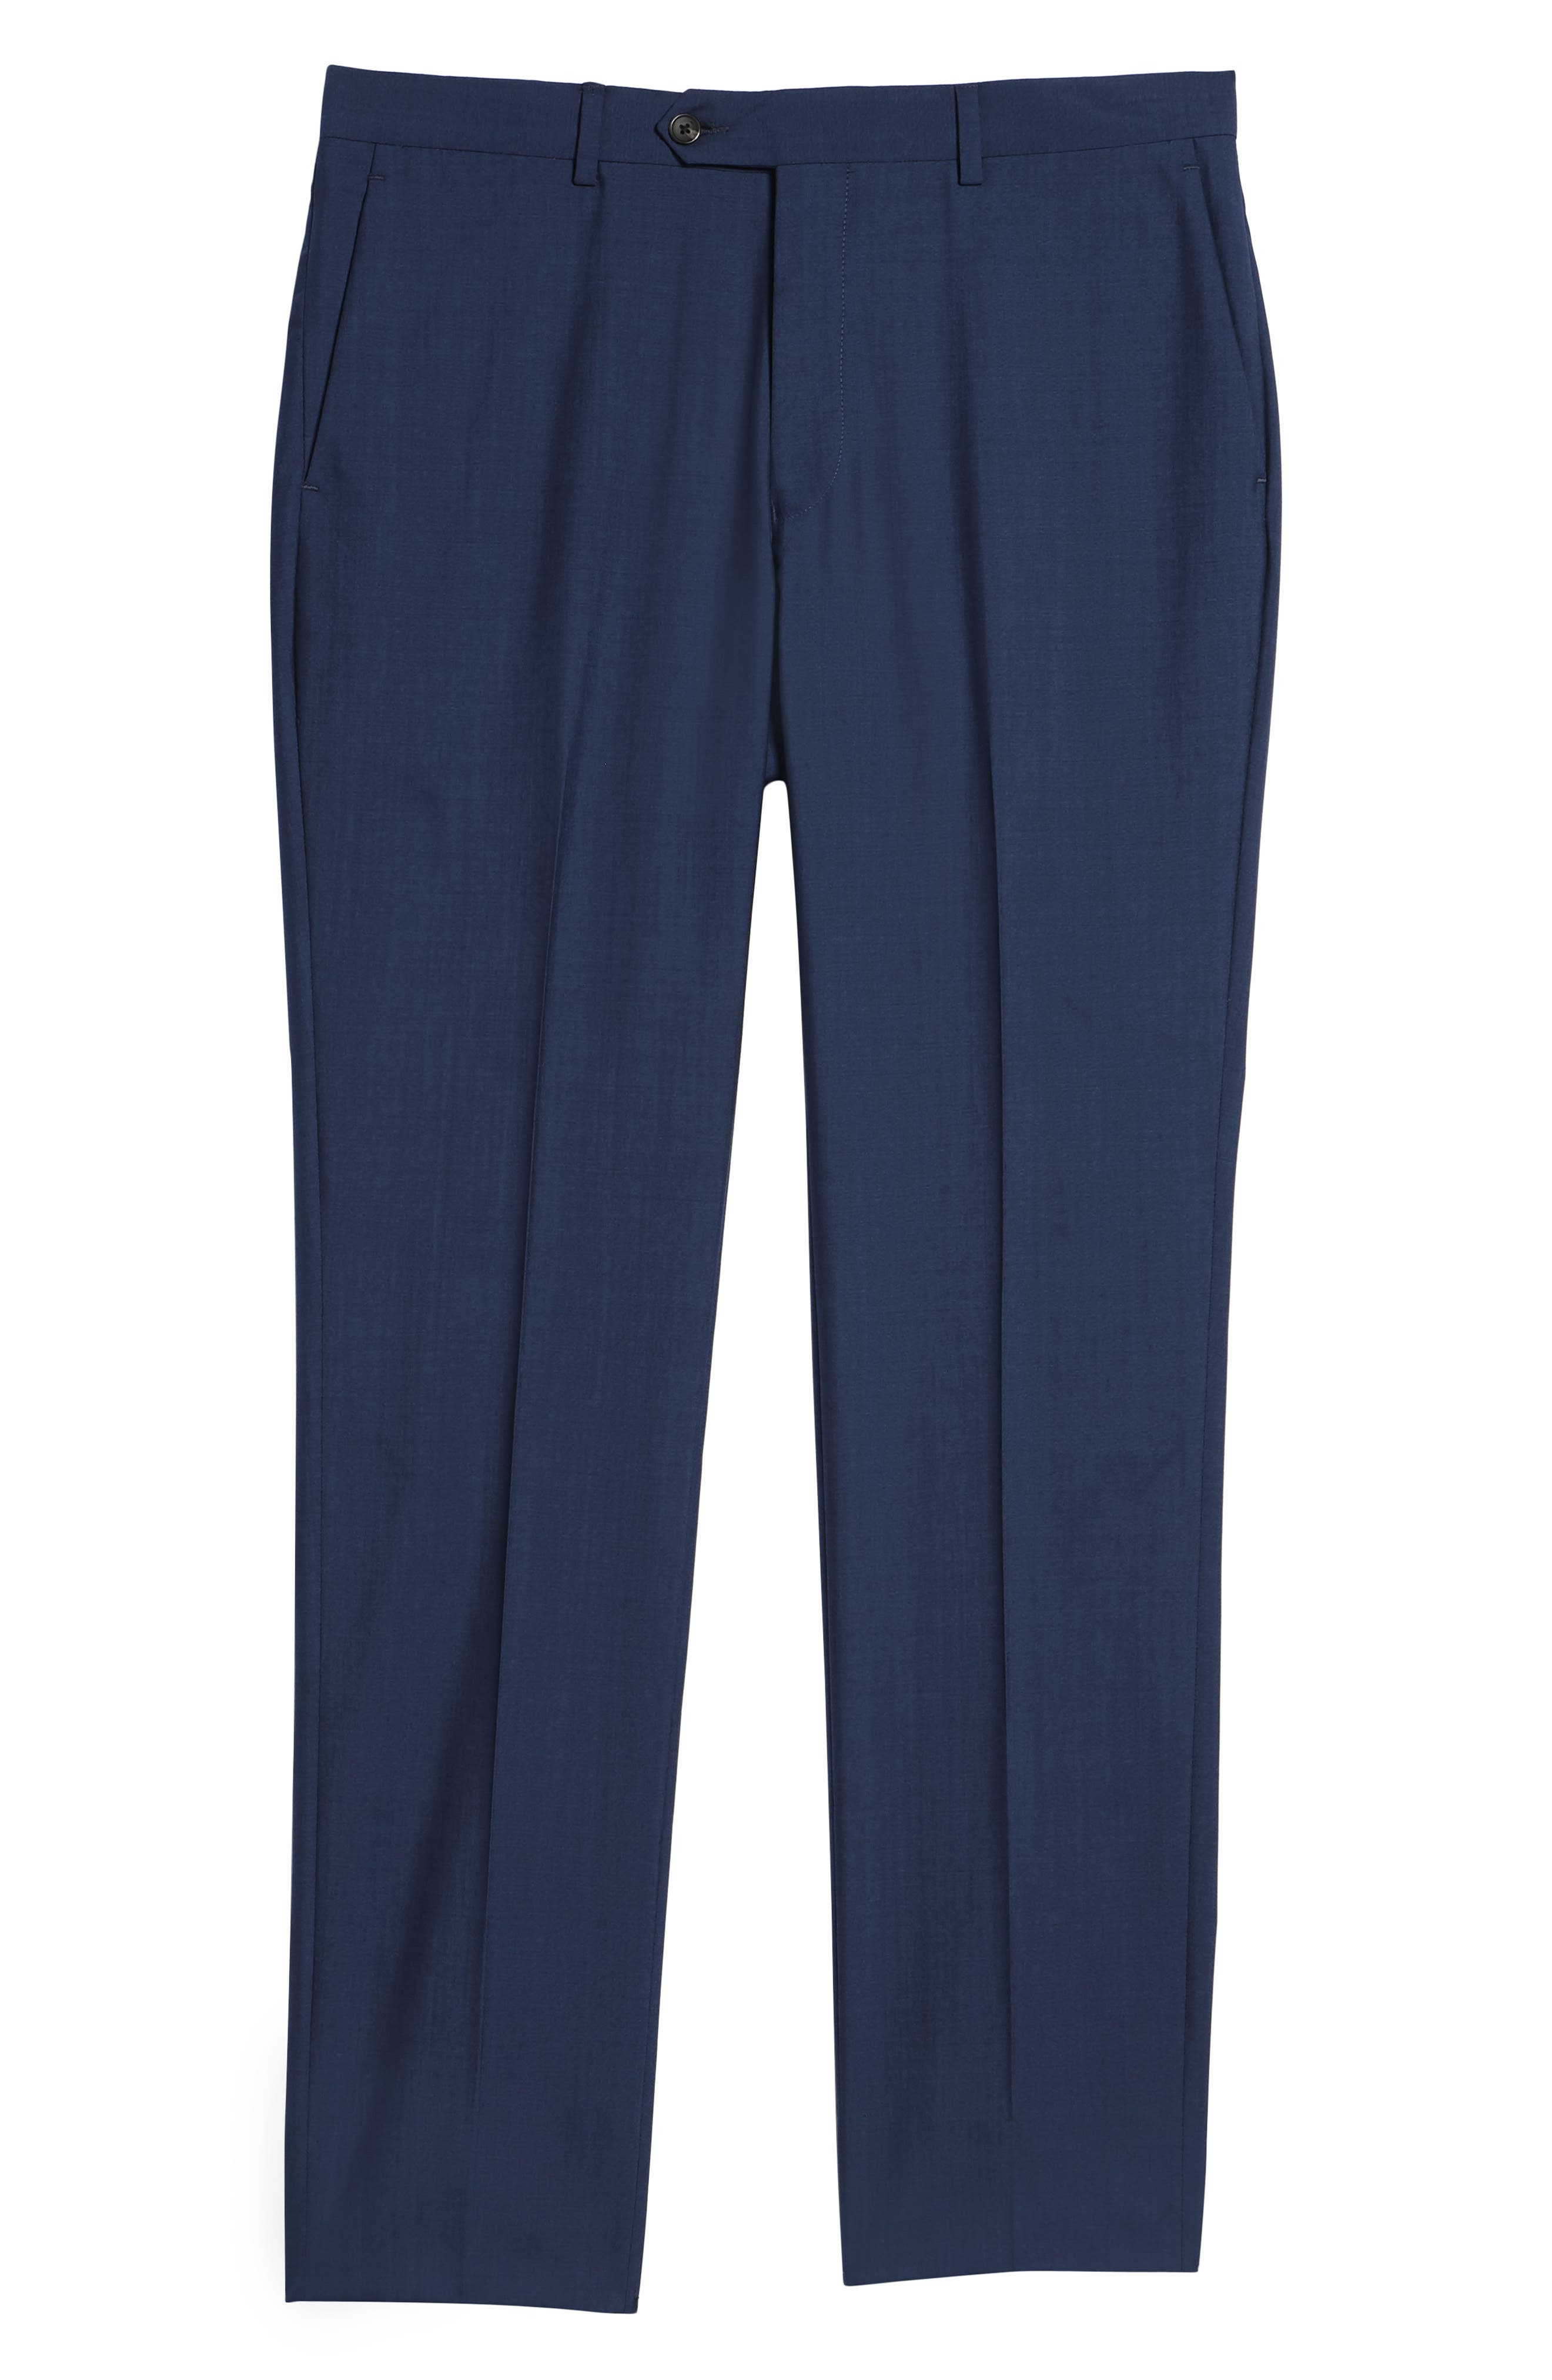 Dagger Flat Front Solid Wool Trousers,                             Alternate thumbnail 6, color,                             400